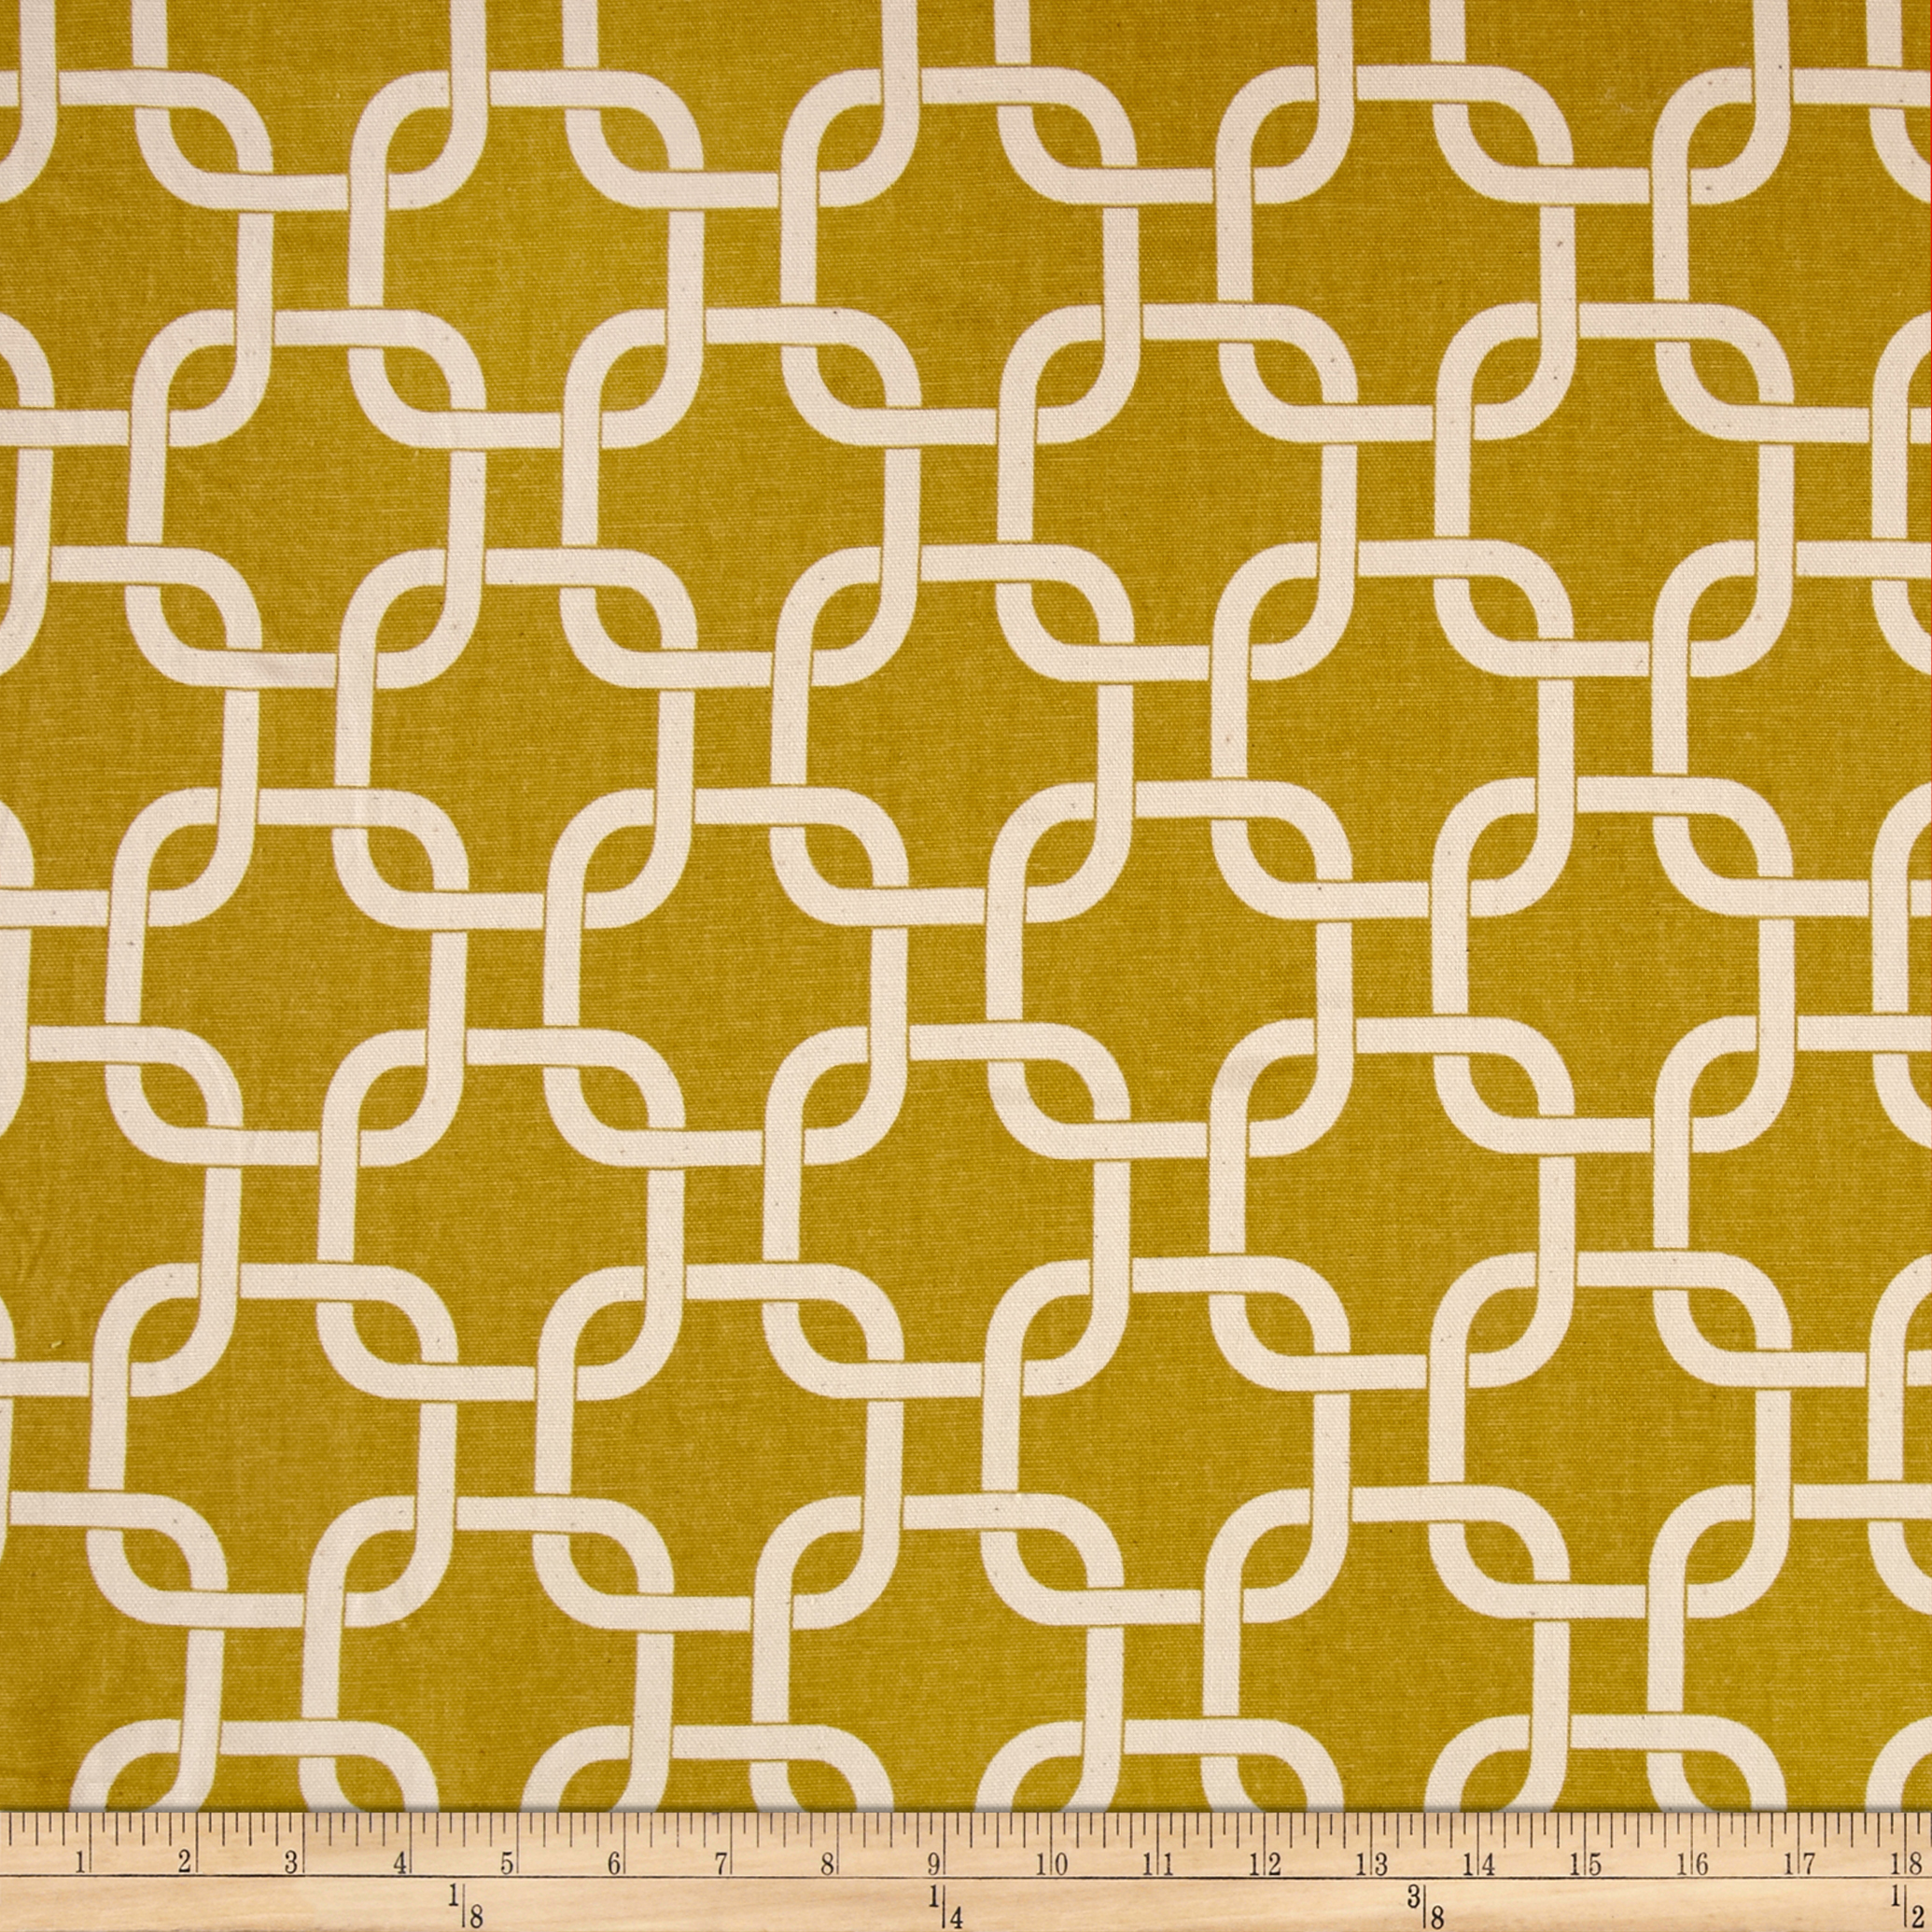 Premier Prints Gotcha Summerland Yellow Fabric